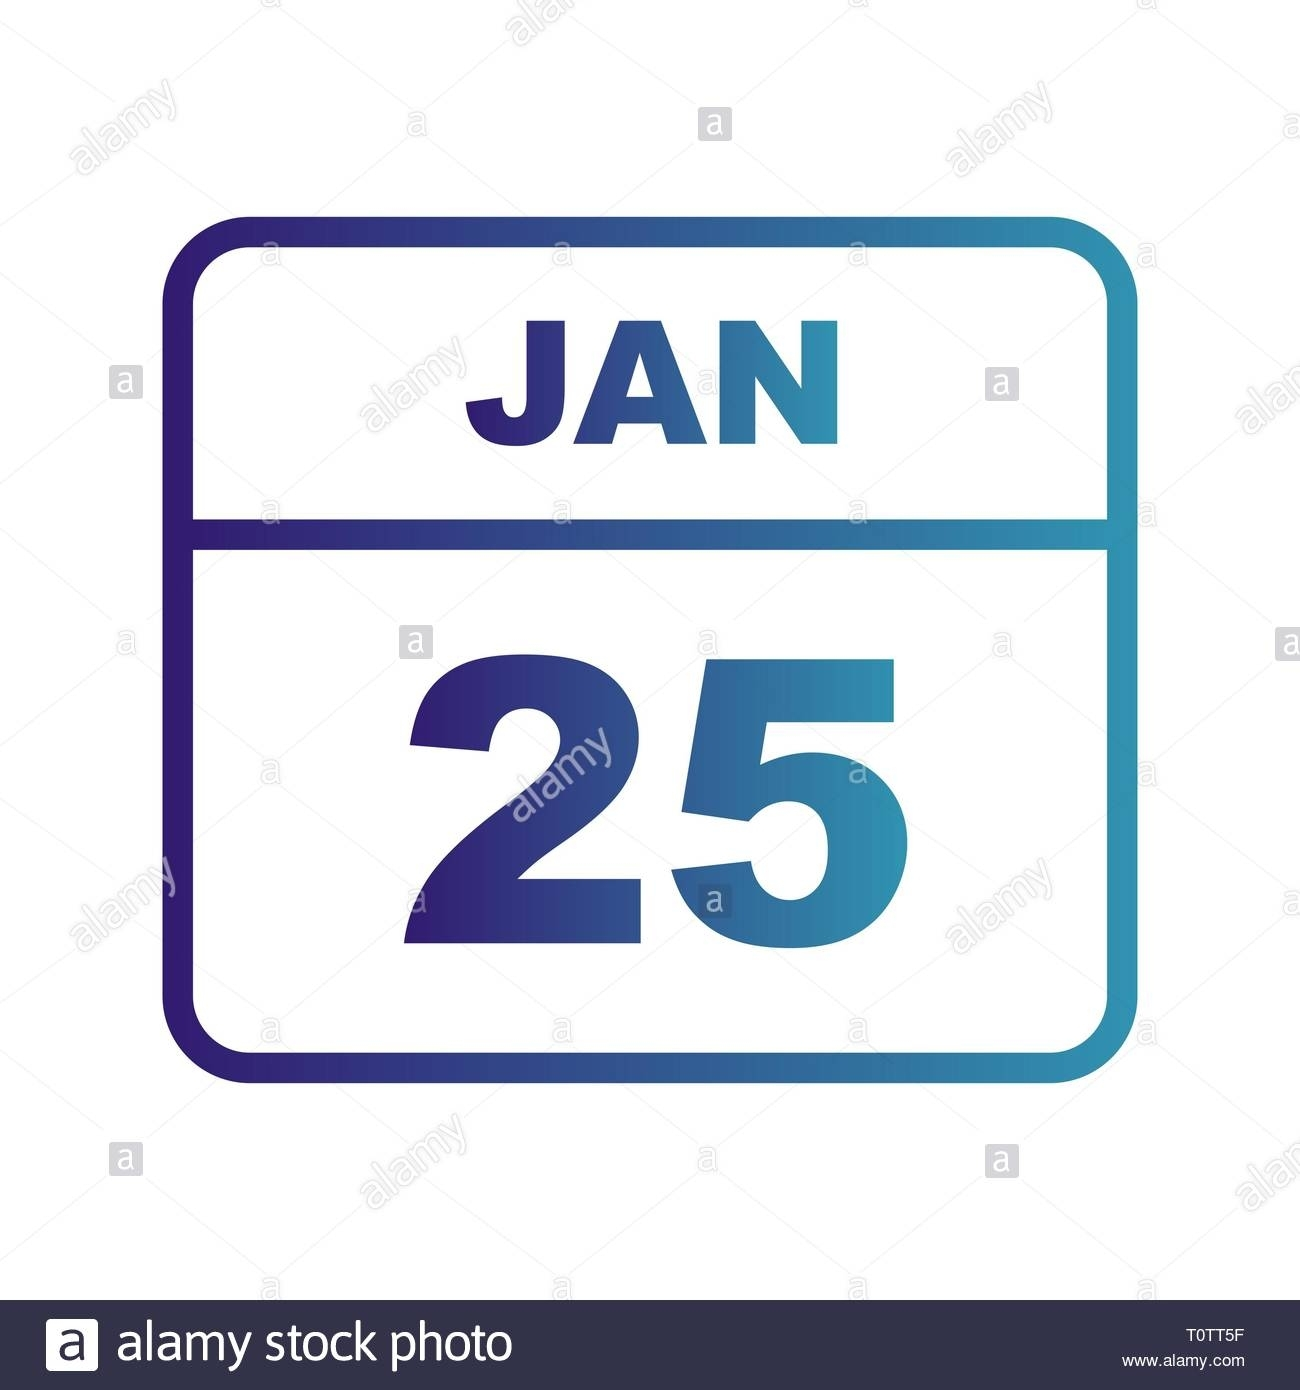 January 25Th Date On A Single Day Calendar Stock Photo - Alamy